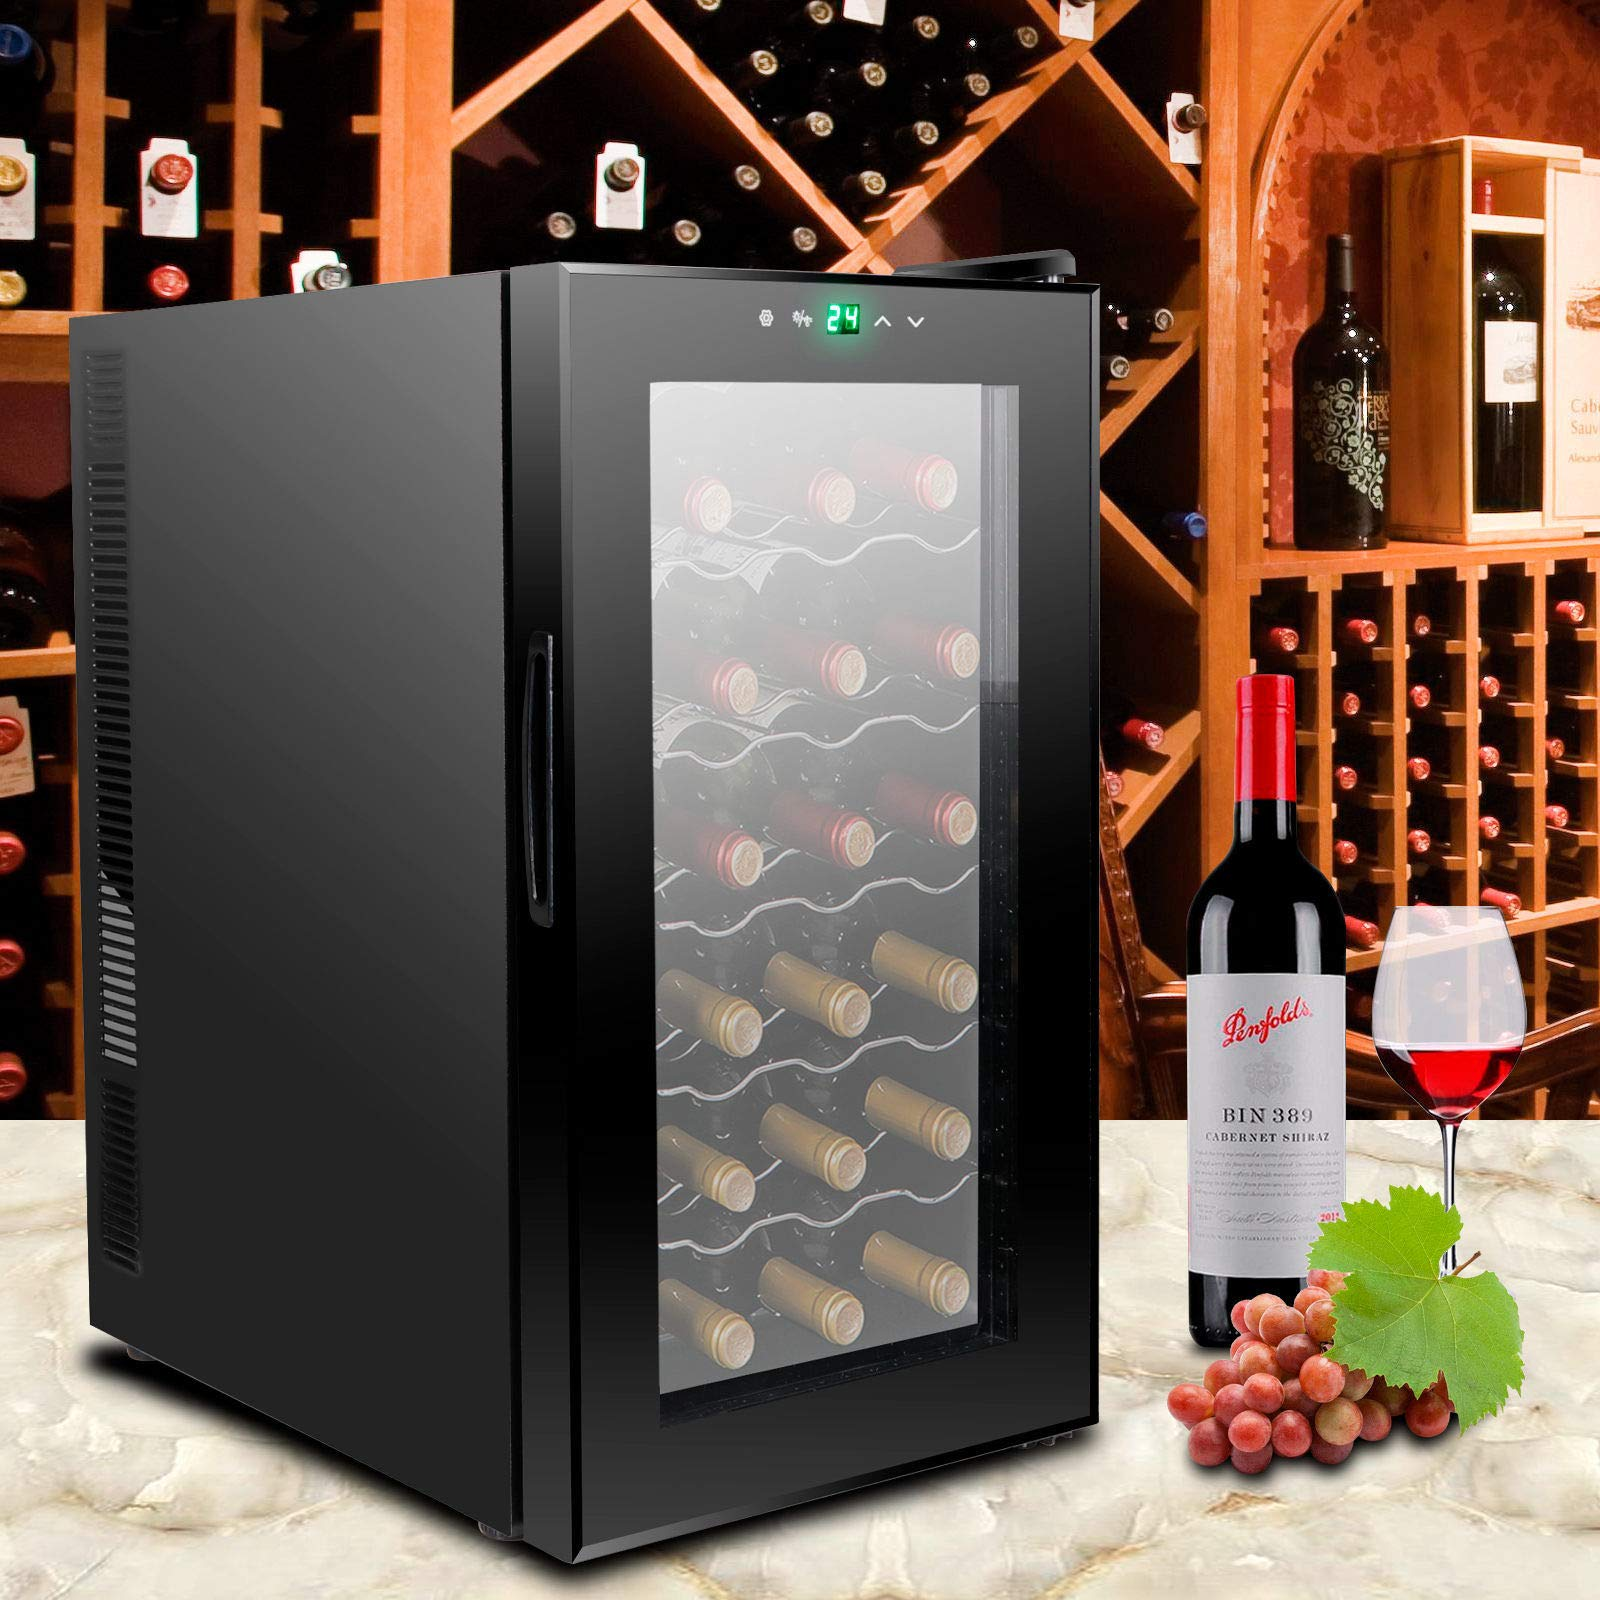 AK Energy 18 Bottles Wine Cooler Refrigerator Air-tight Seal Quiet 50-64 F Temperature Control by AK Energy (Image #3)